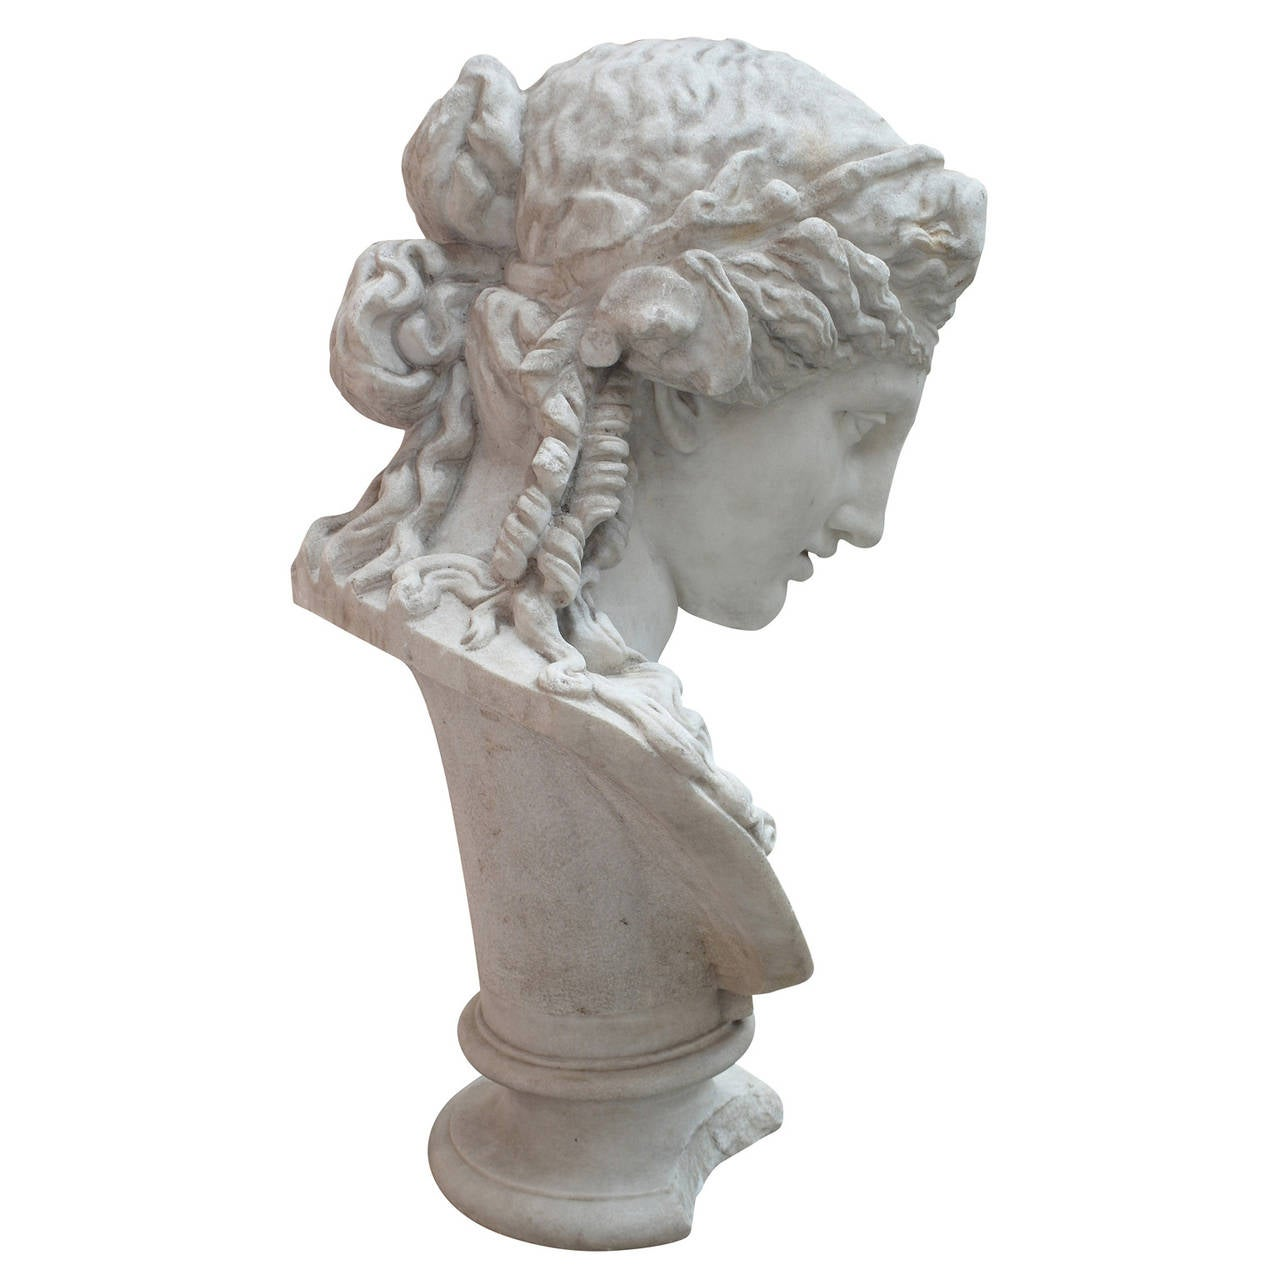 The bust stands on a baluster foot. The head seems to be female due to the long curly hair and the elaborate hairstyle. There is no indication of clothing but a single headband holding her hair in place. She looks down and has a very classically